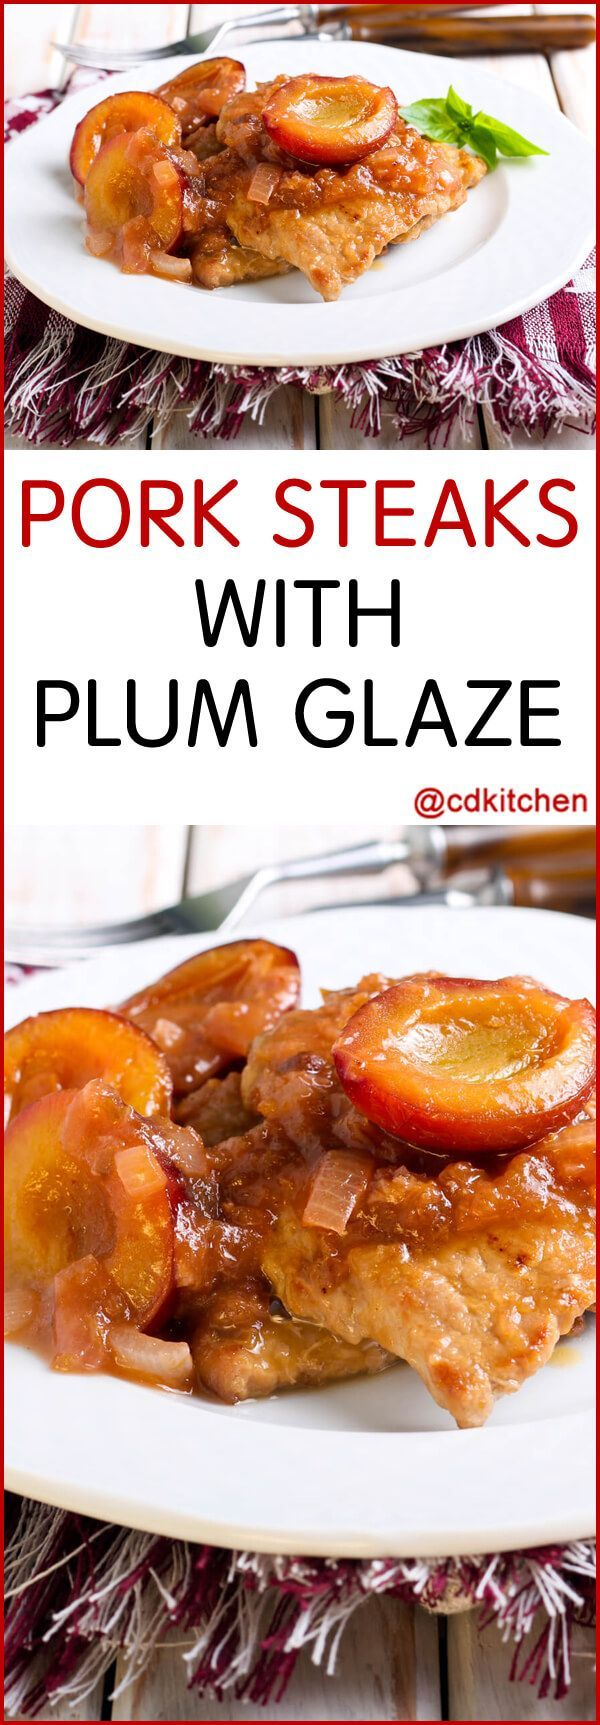 "Pork Steaks With Plum Glaze - This different way of cooking pork steak starts with lean pork tenderloin that is cut into ""steaks"". But the real appeal is the grilled plums and onion-plum sauce glaze.